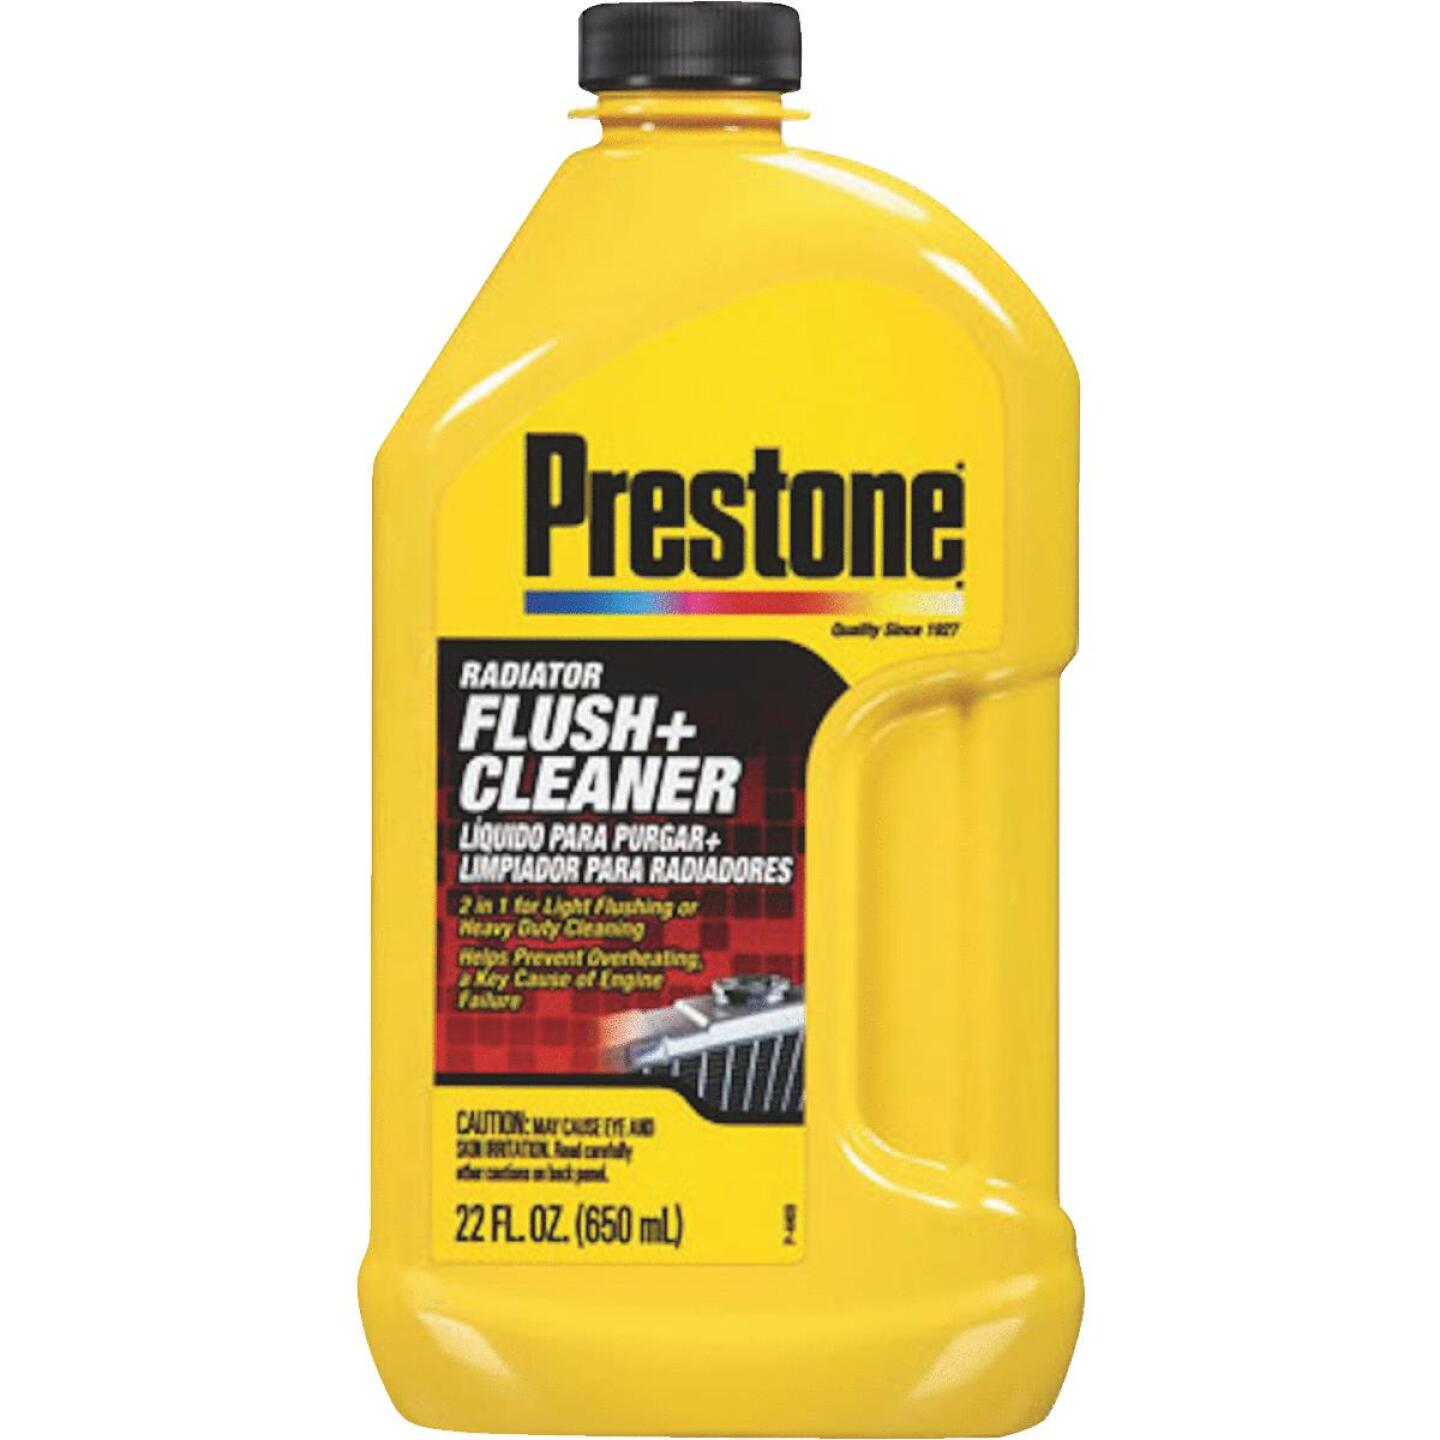 Prestone One-Step Process 22 fl oz  Radiator Flush Image 1